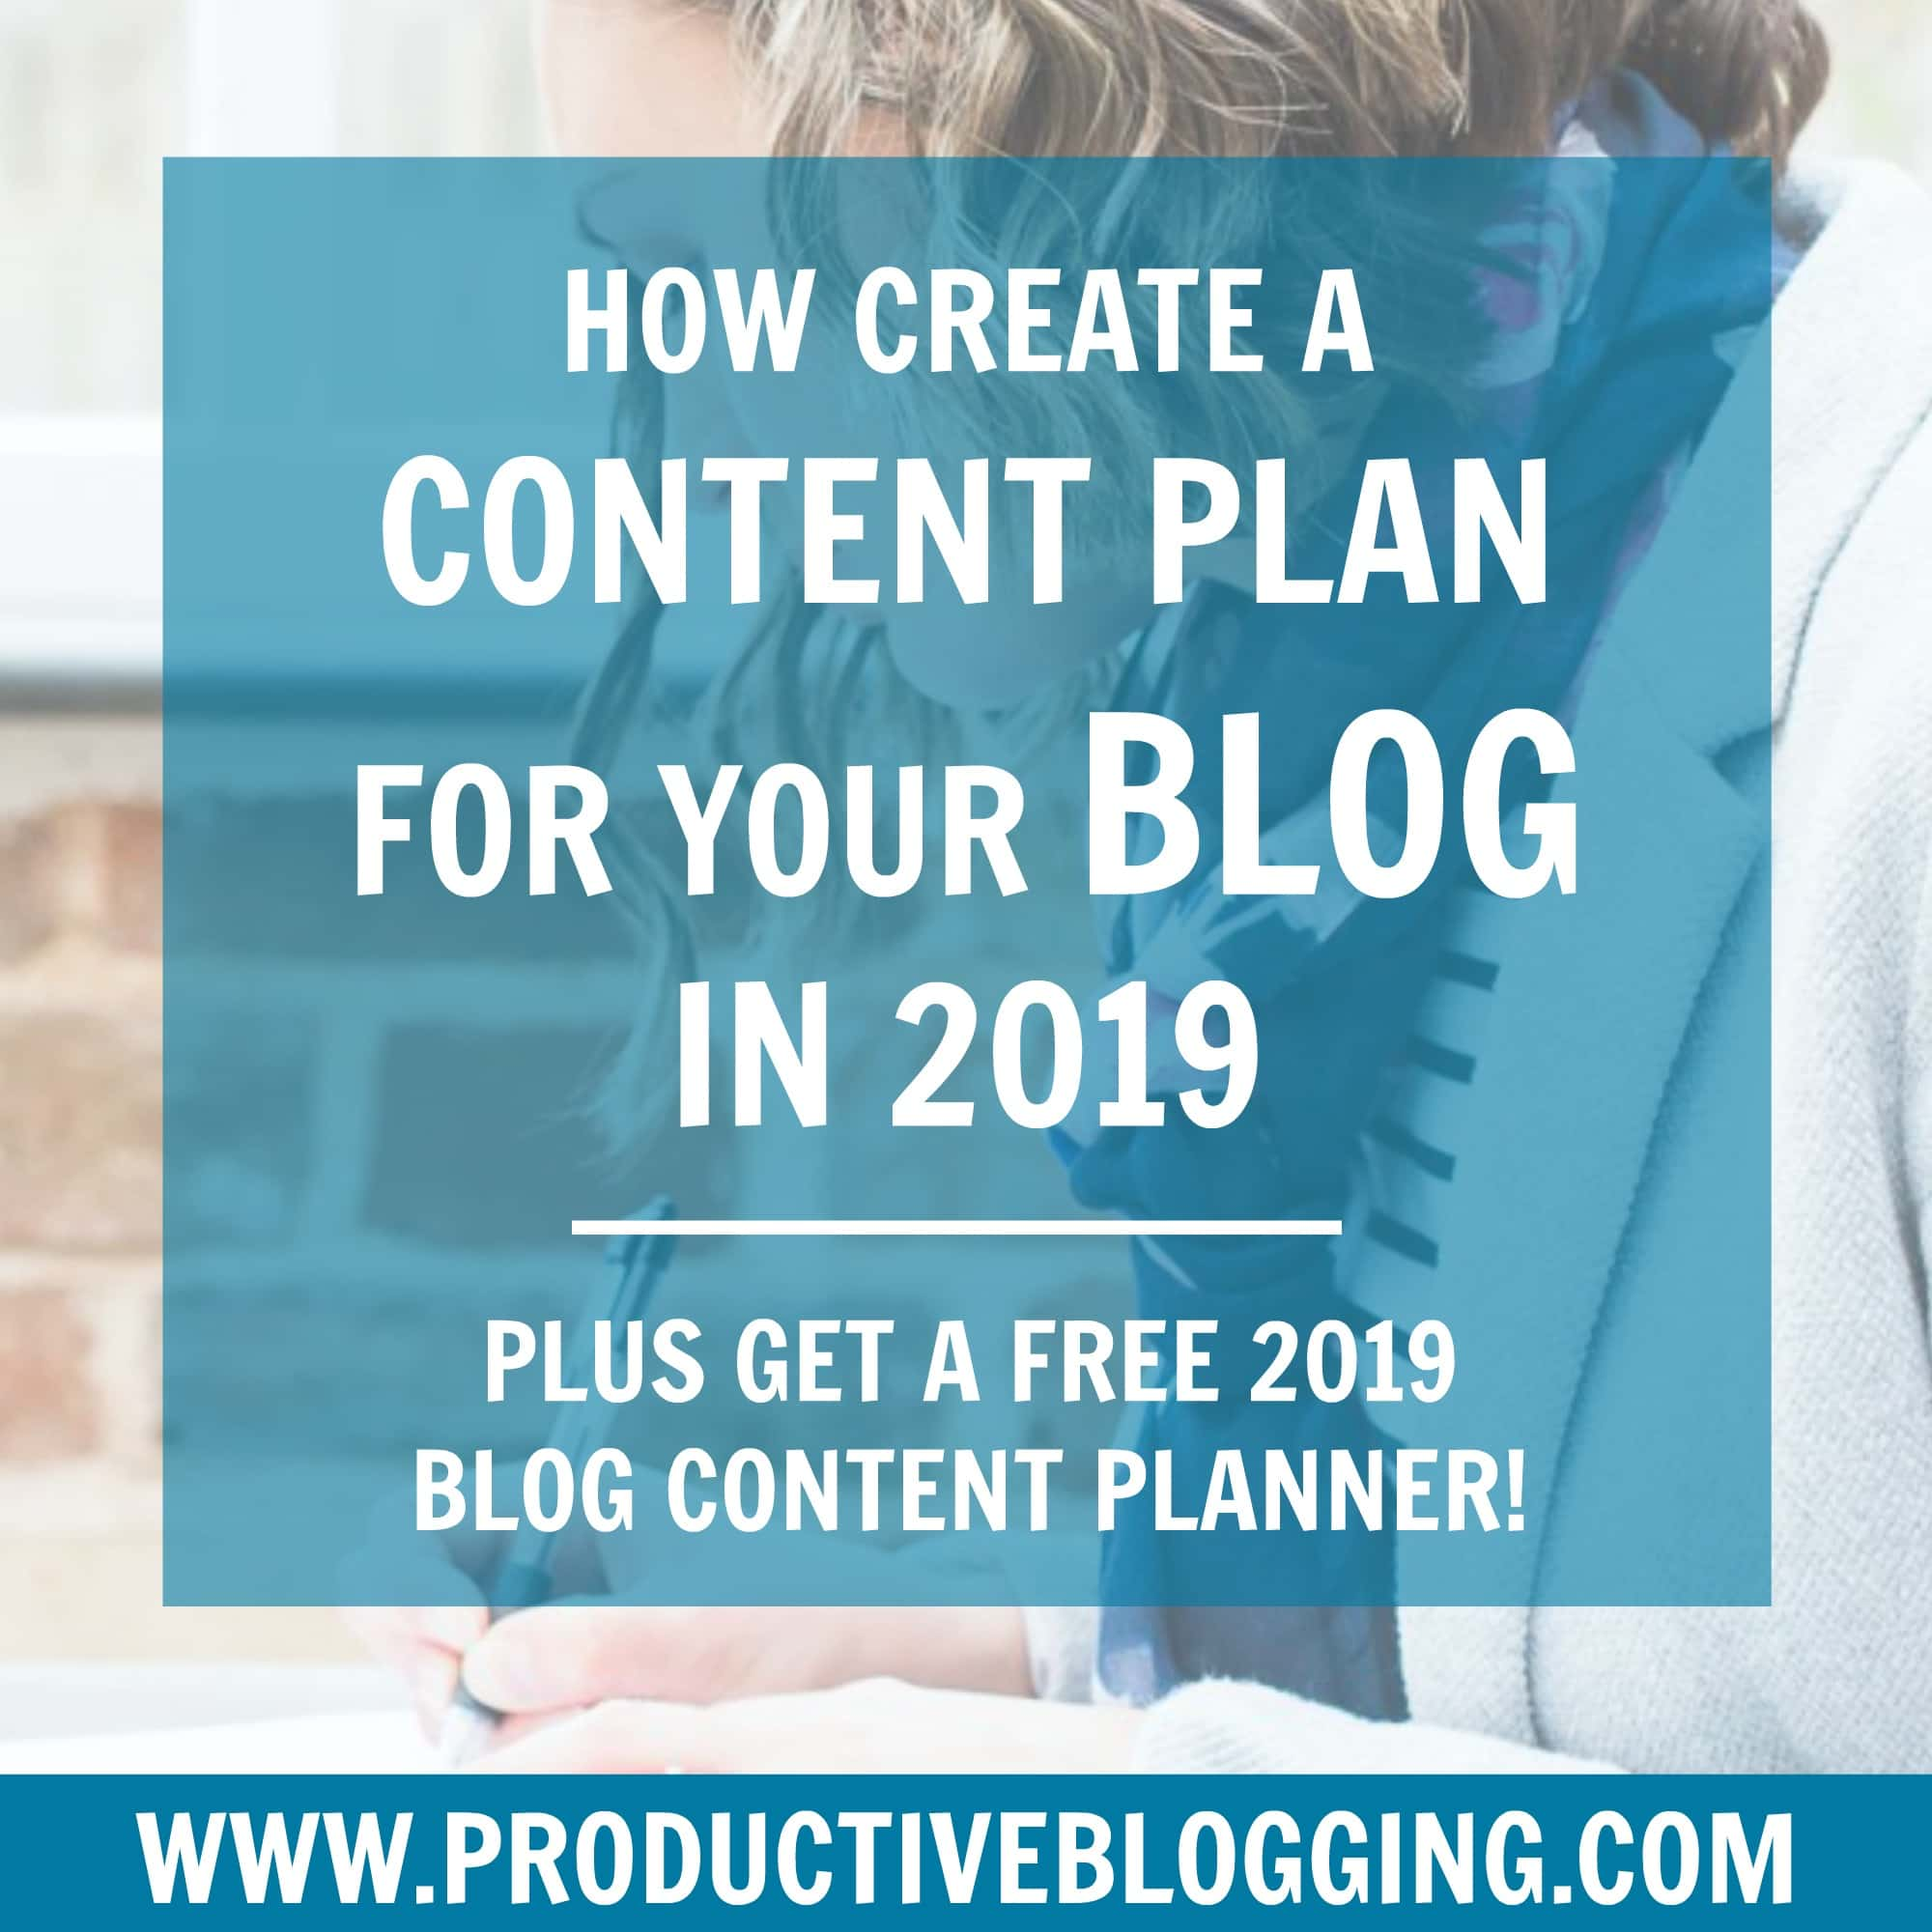 How to create a content plan for your blog in 2019